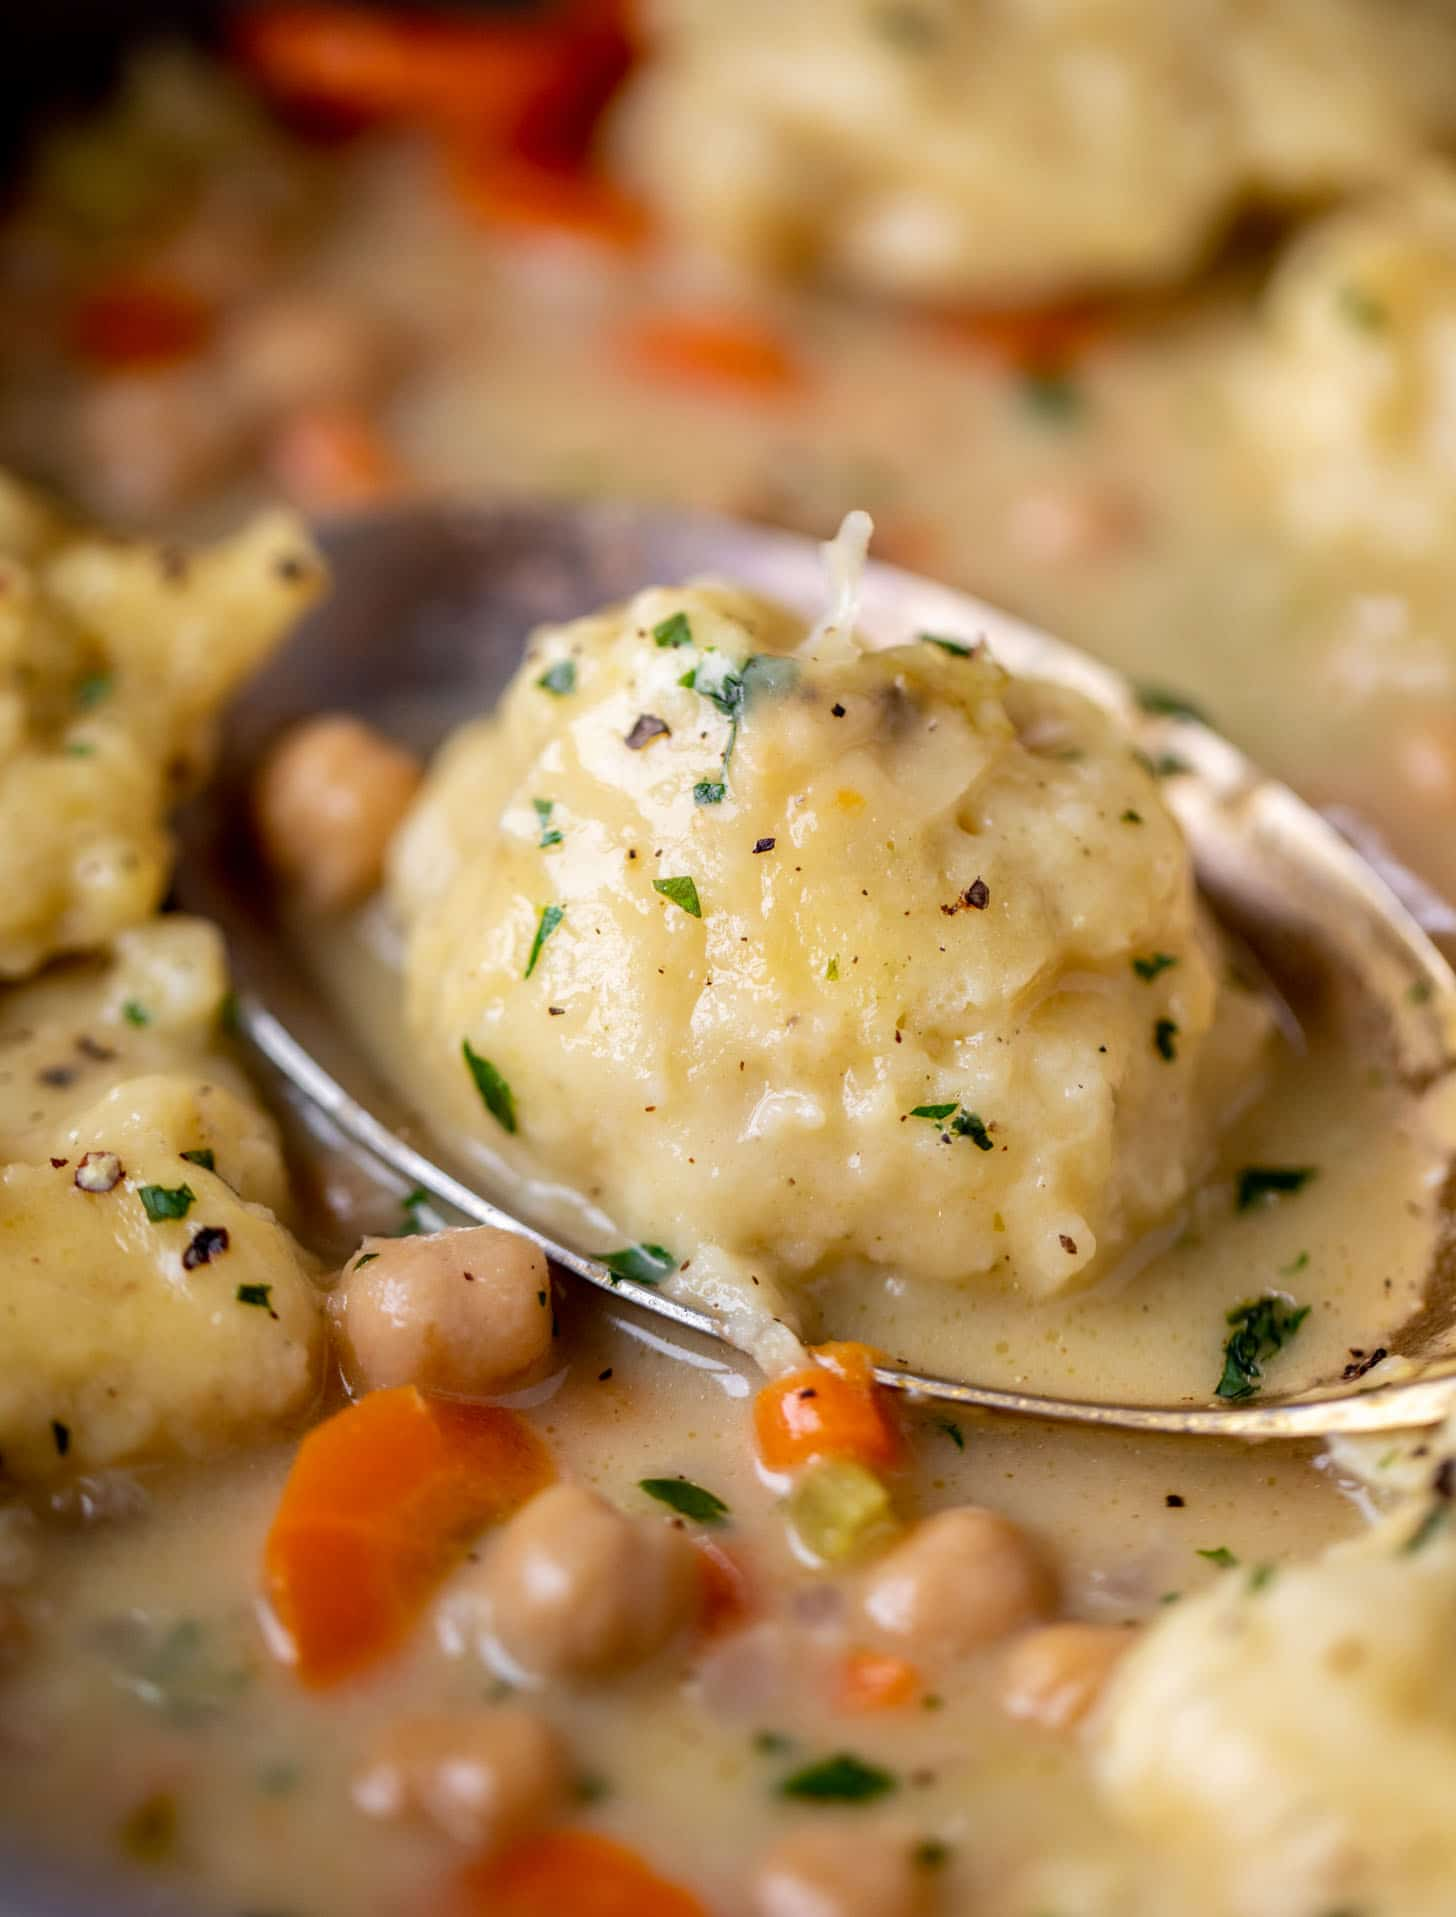 close up of chickpeas and dumplings